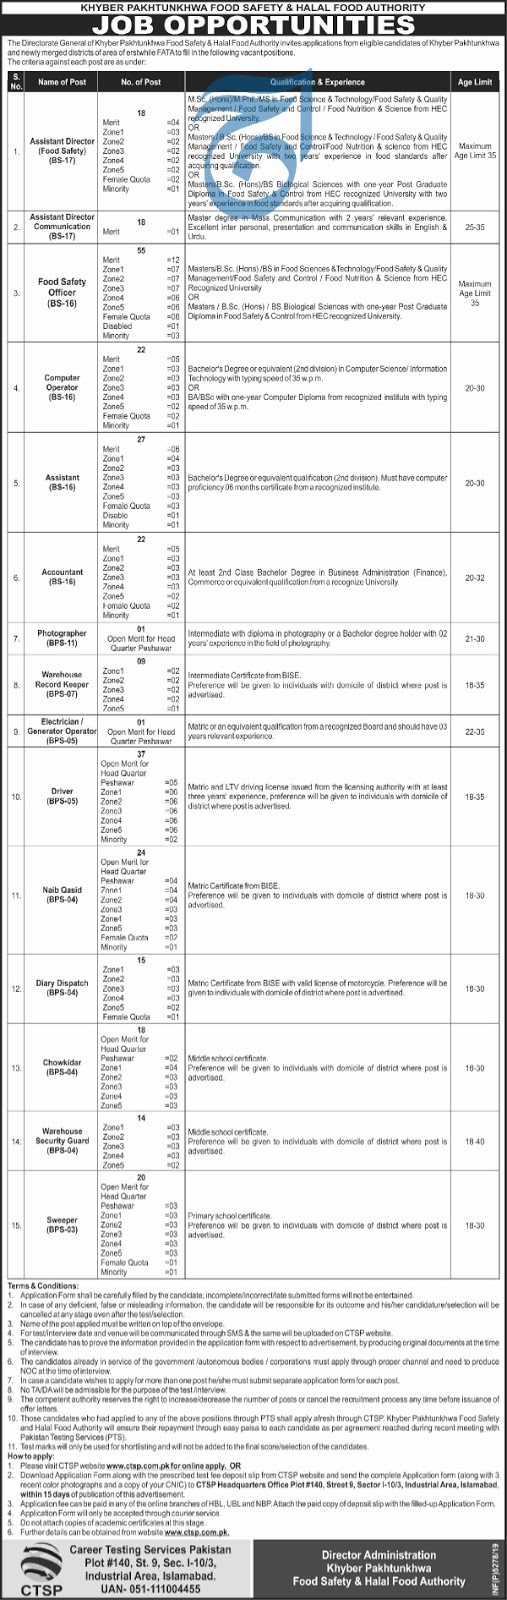 Jobs in Khyber Pakhtunkhwa Food Safety and Halal Food Authority 2019